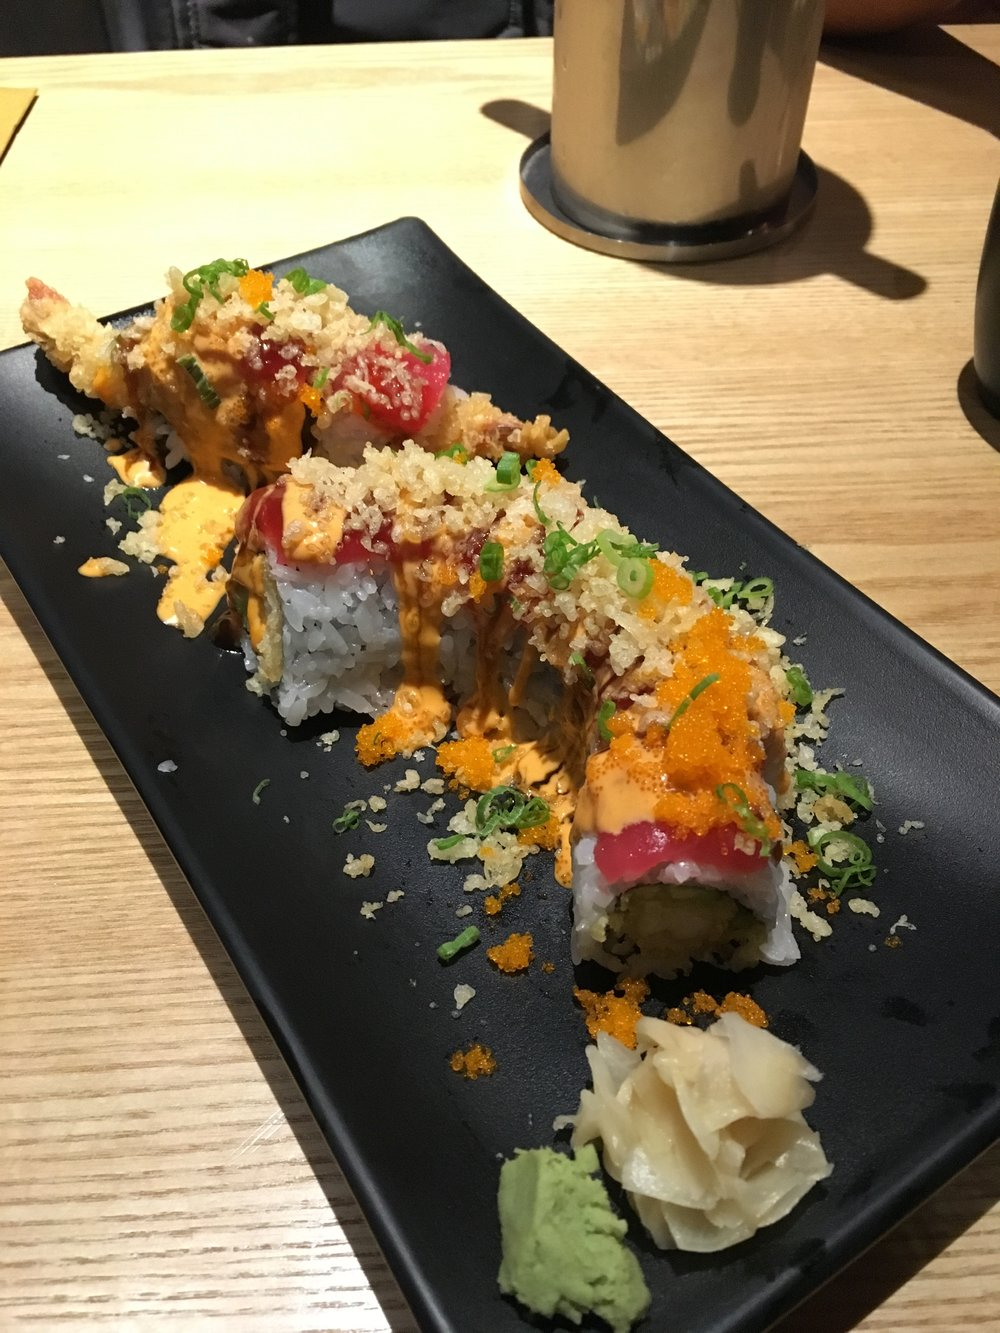 Playgirl Roll: tuna & shrimp tempura with avocado & crunch flakes